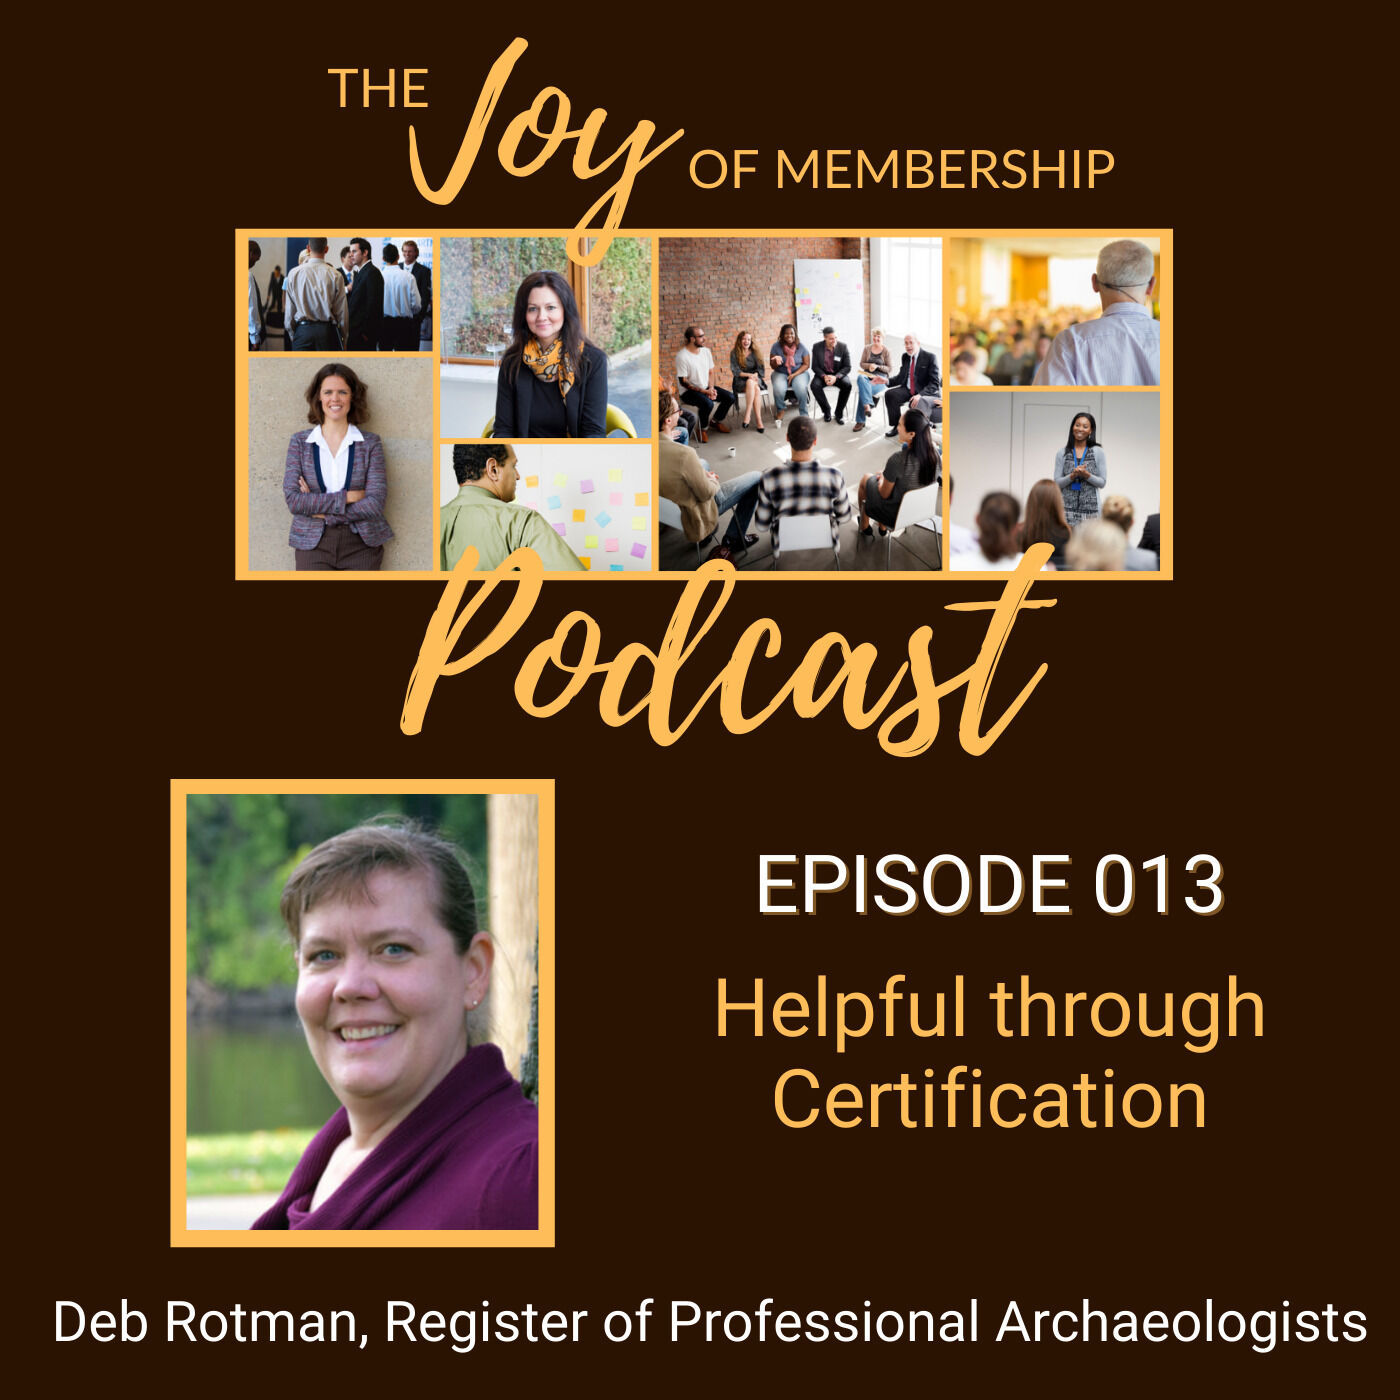 Helpful through Certification: Register of Professional Archaeologists